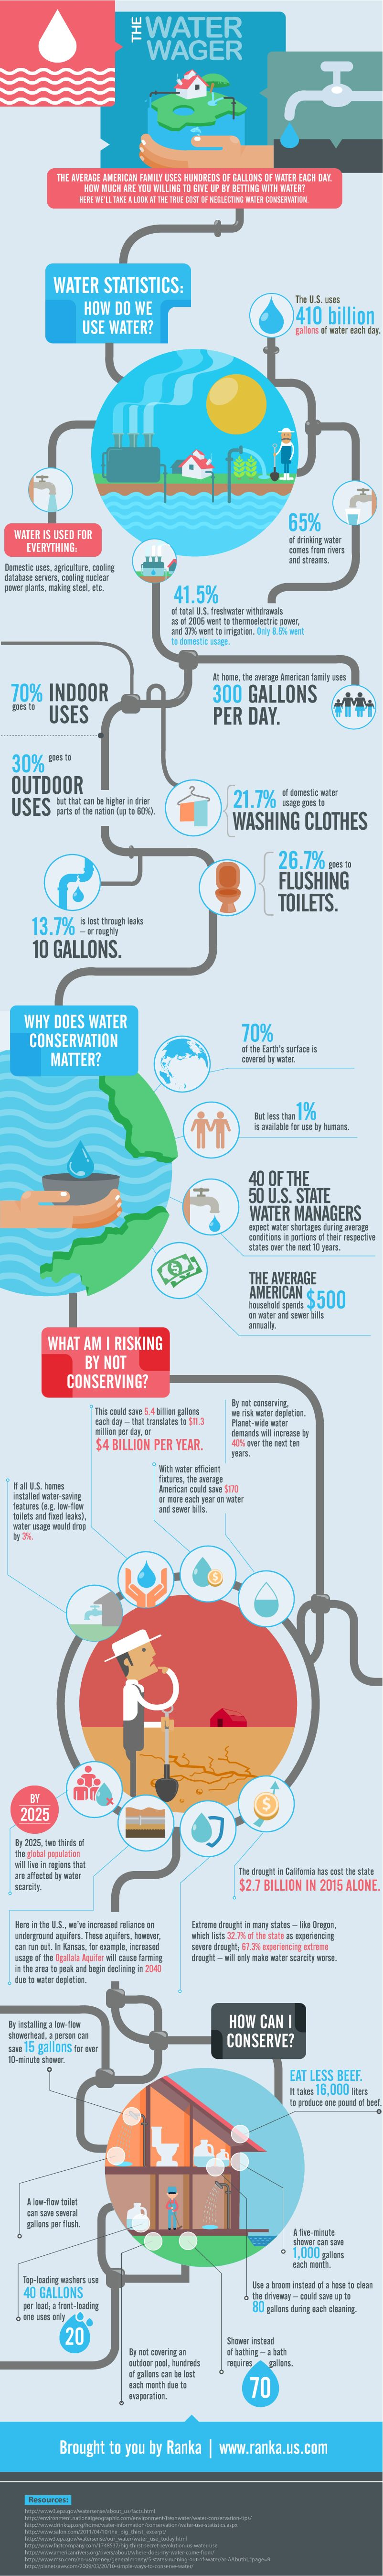 The Water Wager #Infographic